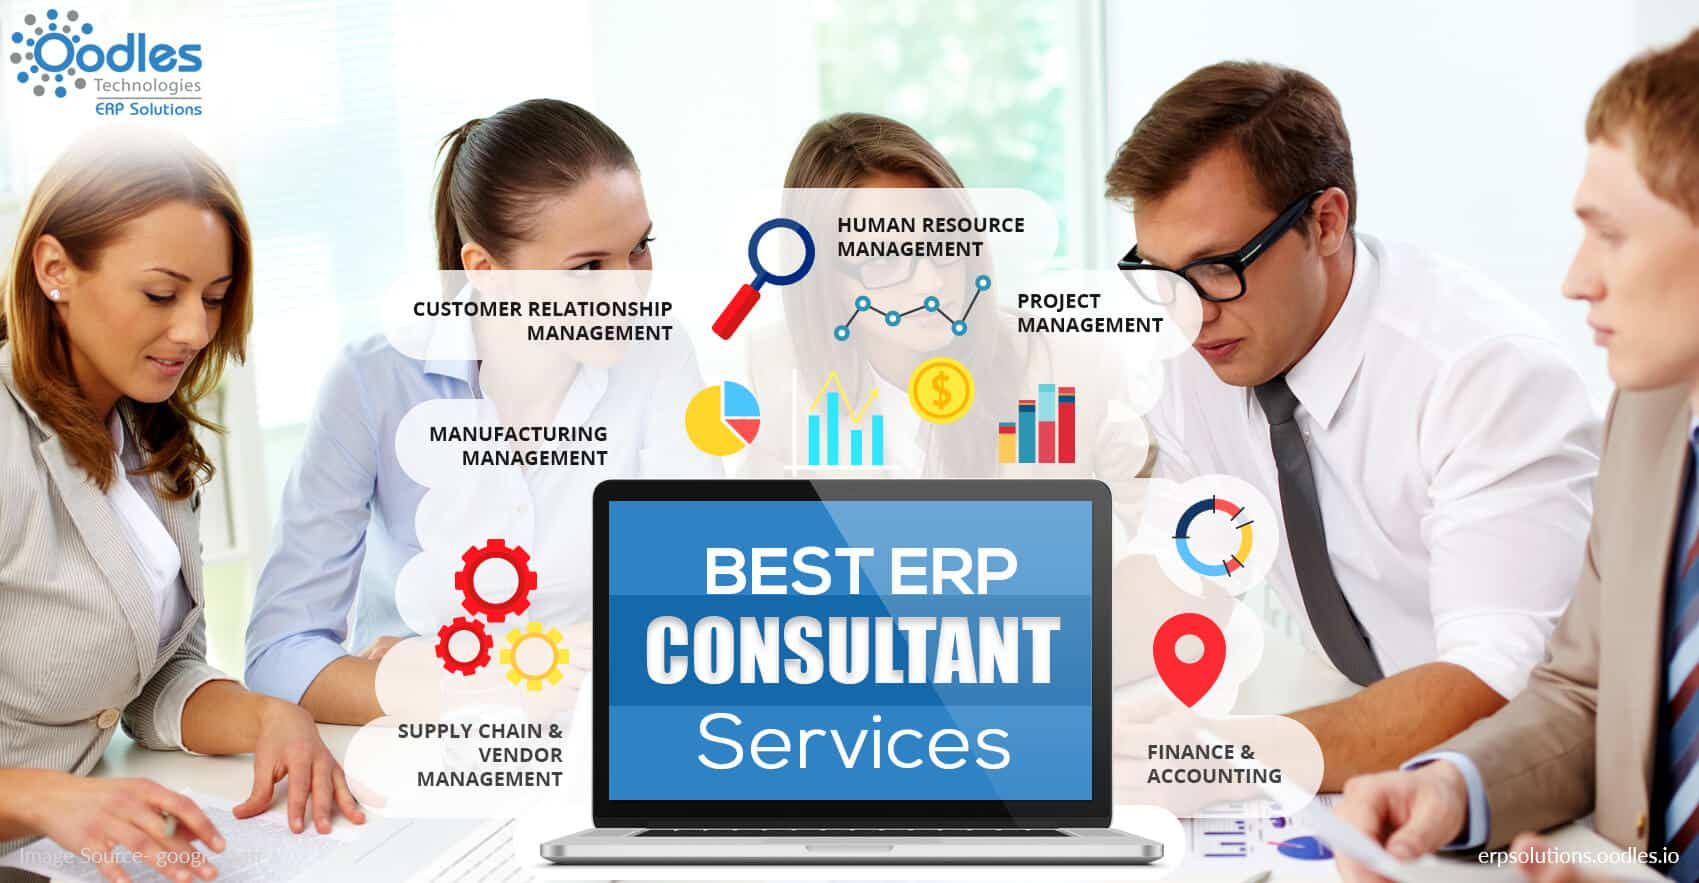 Best ERP Consultant Services